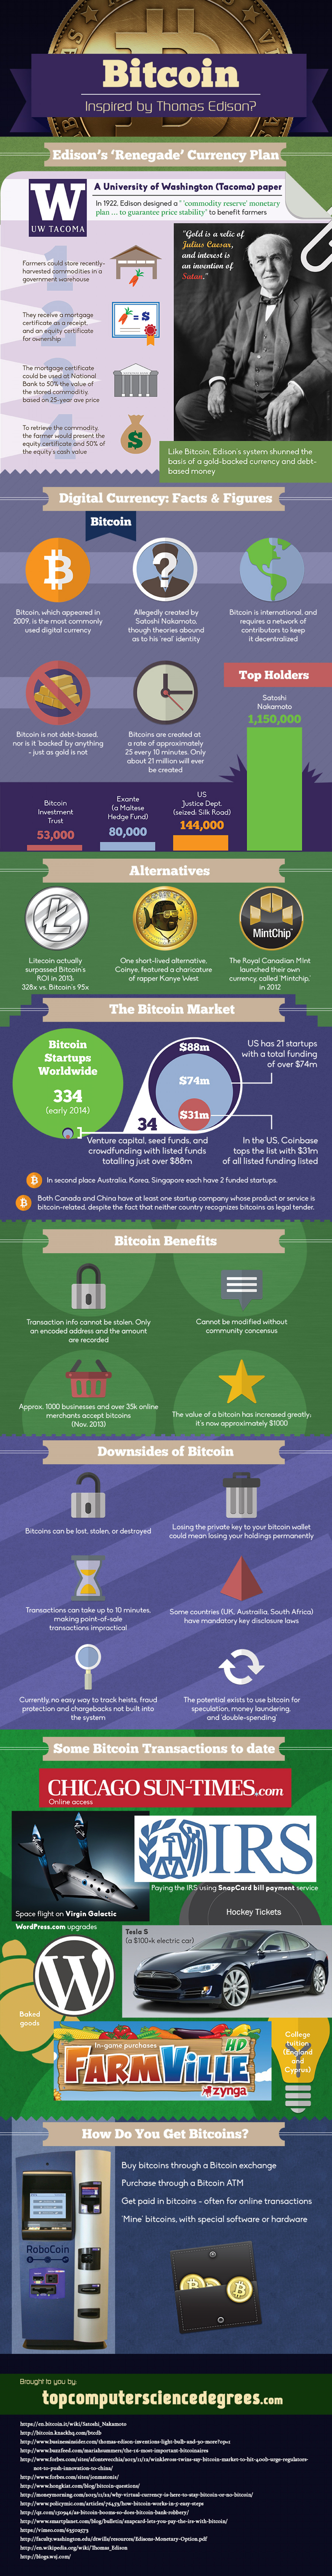 Bitcoin: Inspired by Thomas Edison? Infographic